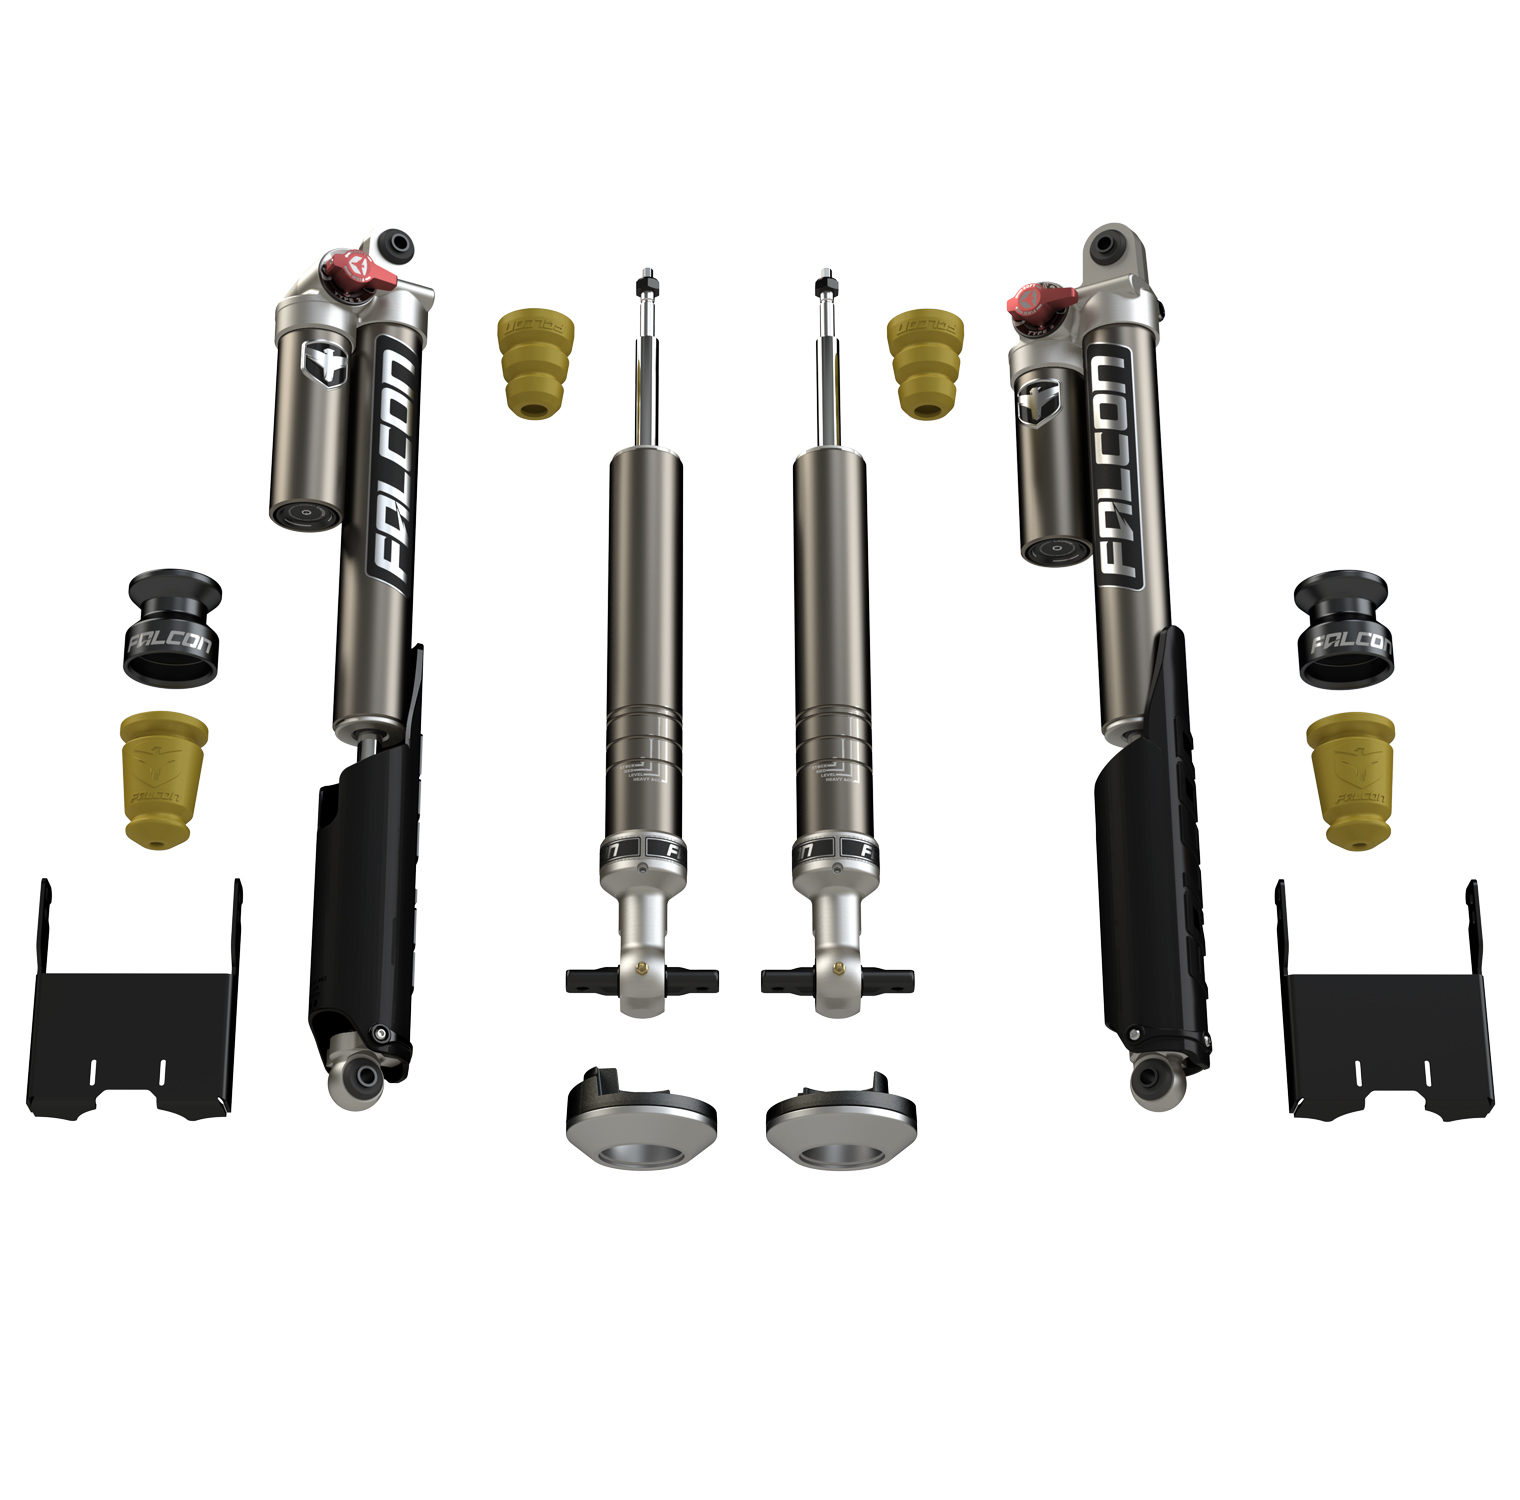 Ford F-150 Shock Leveling Falcon 2.25 Inch Sport Tow/Haul System For 15-Pres Ford F-150 TeraFlex